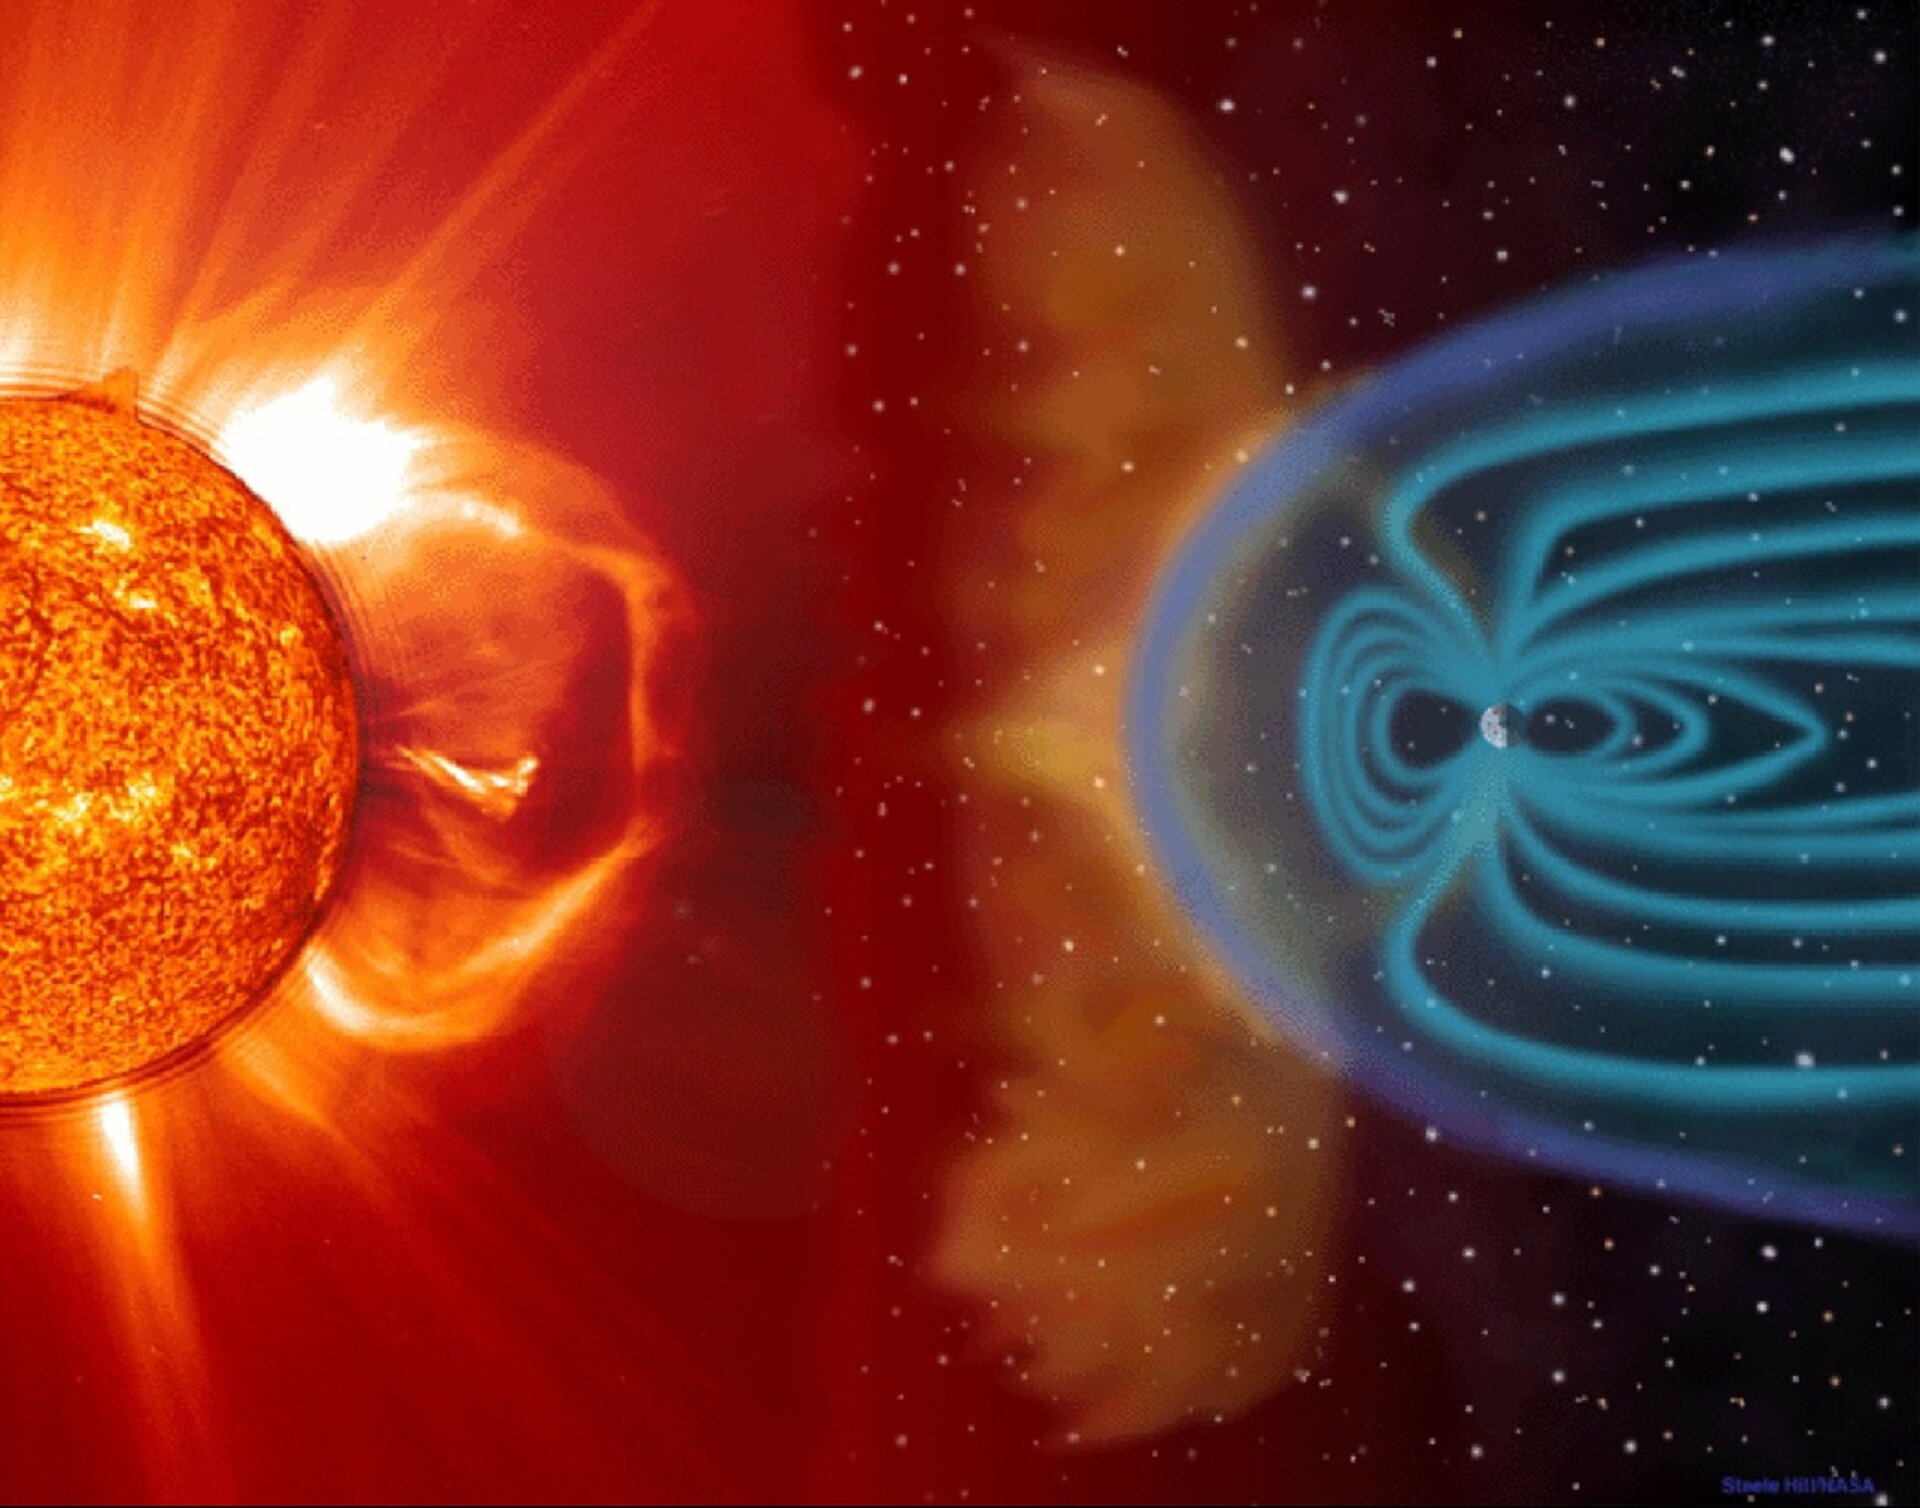 The Sun is a major radiation source